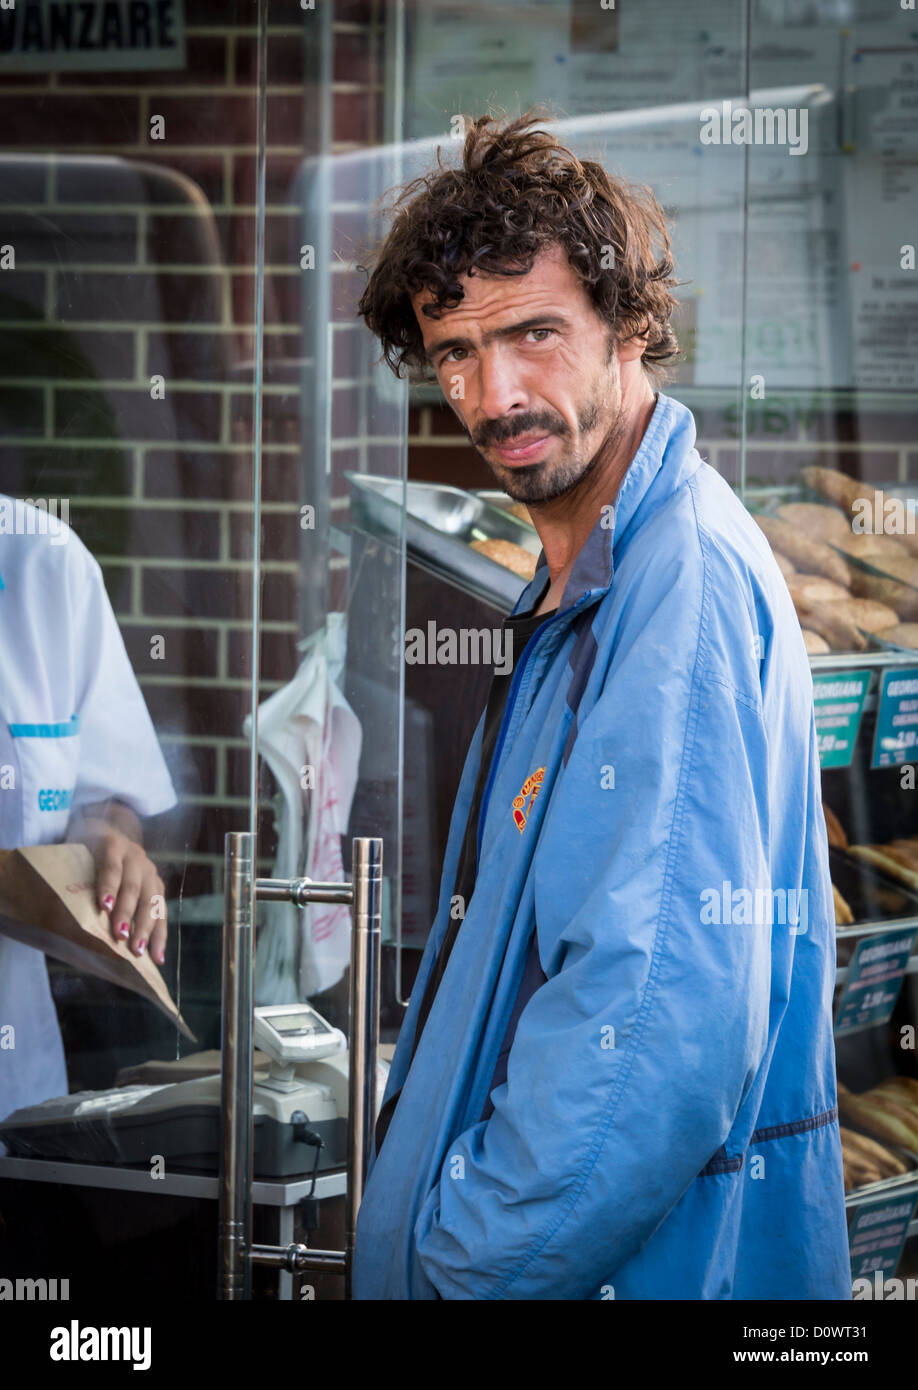 BUCHAREST, ROMANIA - September 29, 2012: Man standing in front of a bakery window in Bucharest. Stock Photo